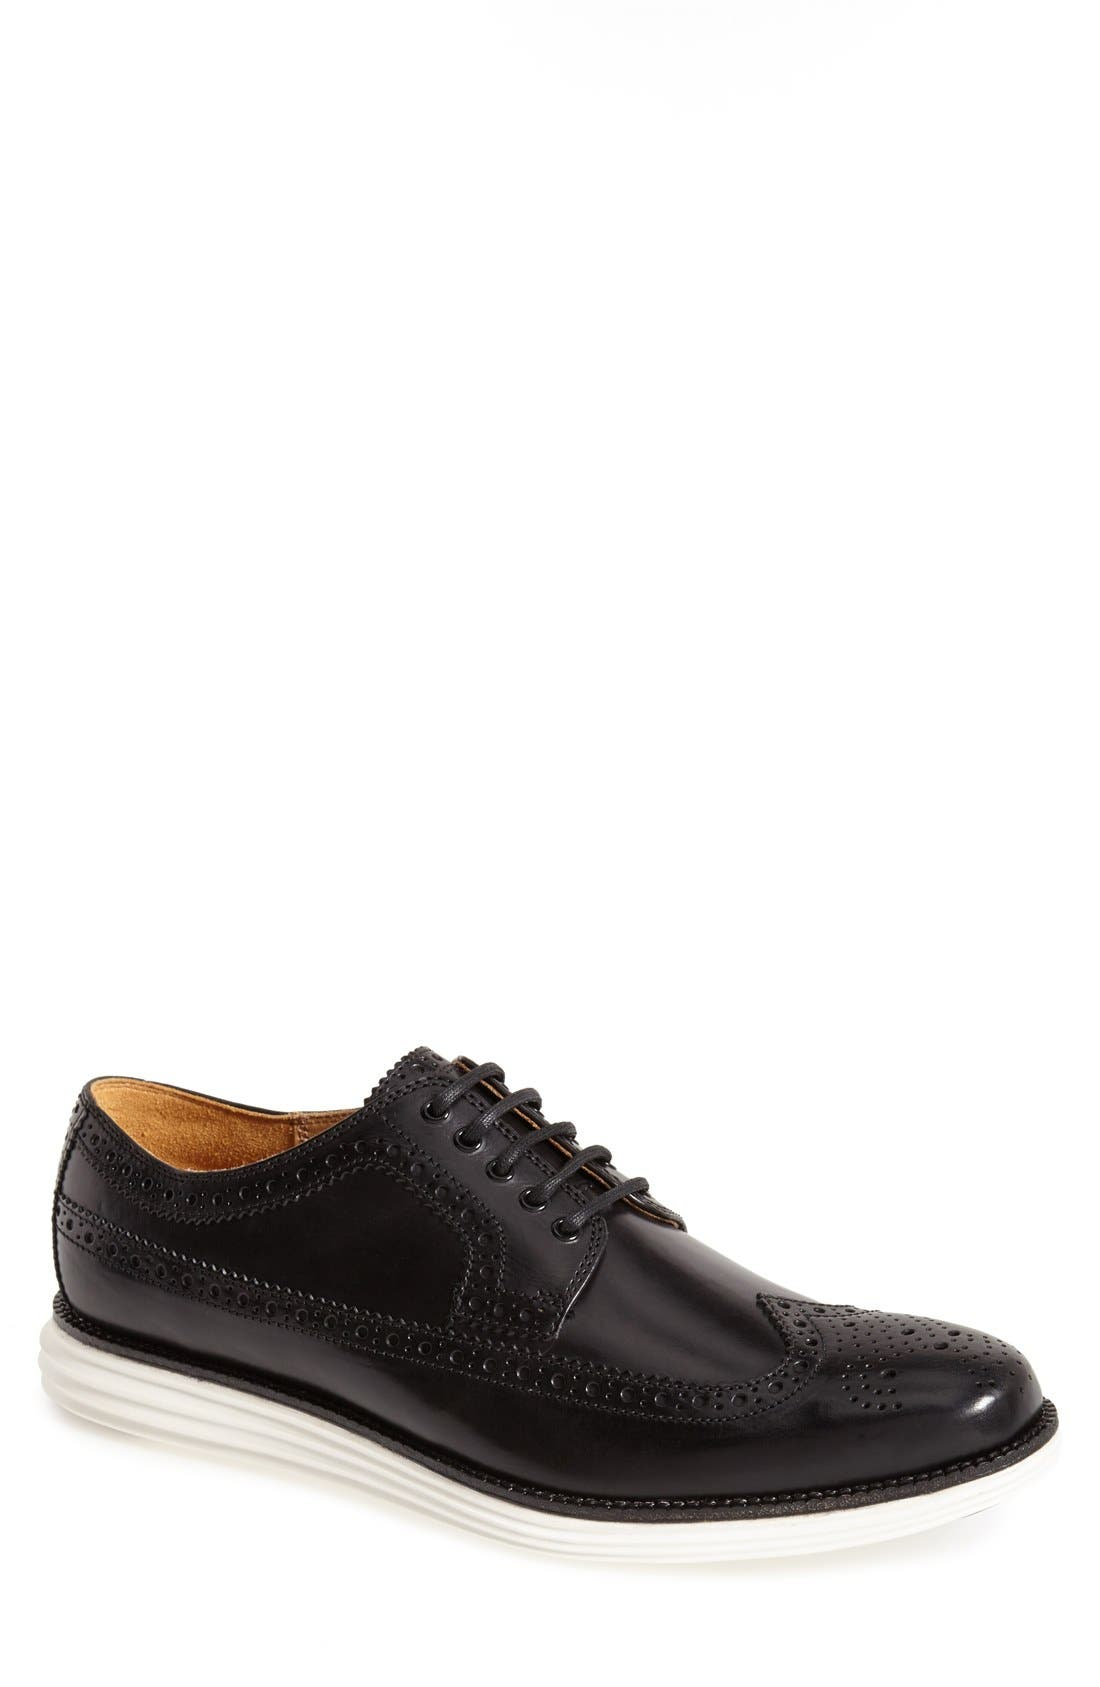 COLE HAAN 'LunarGrand' Wingtip, Main, color, 001